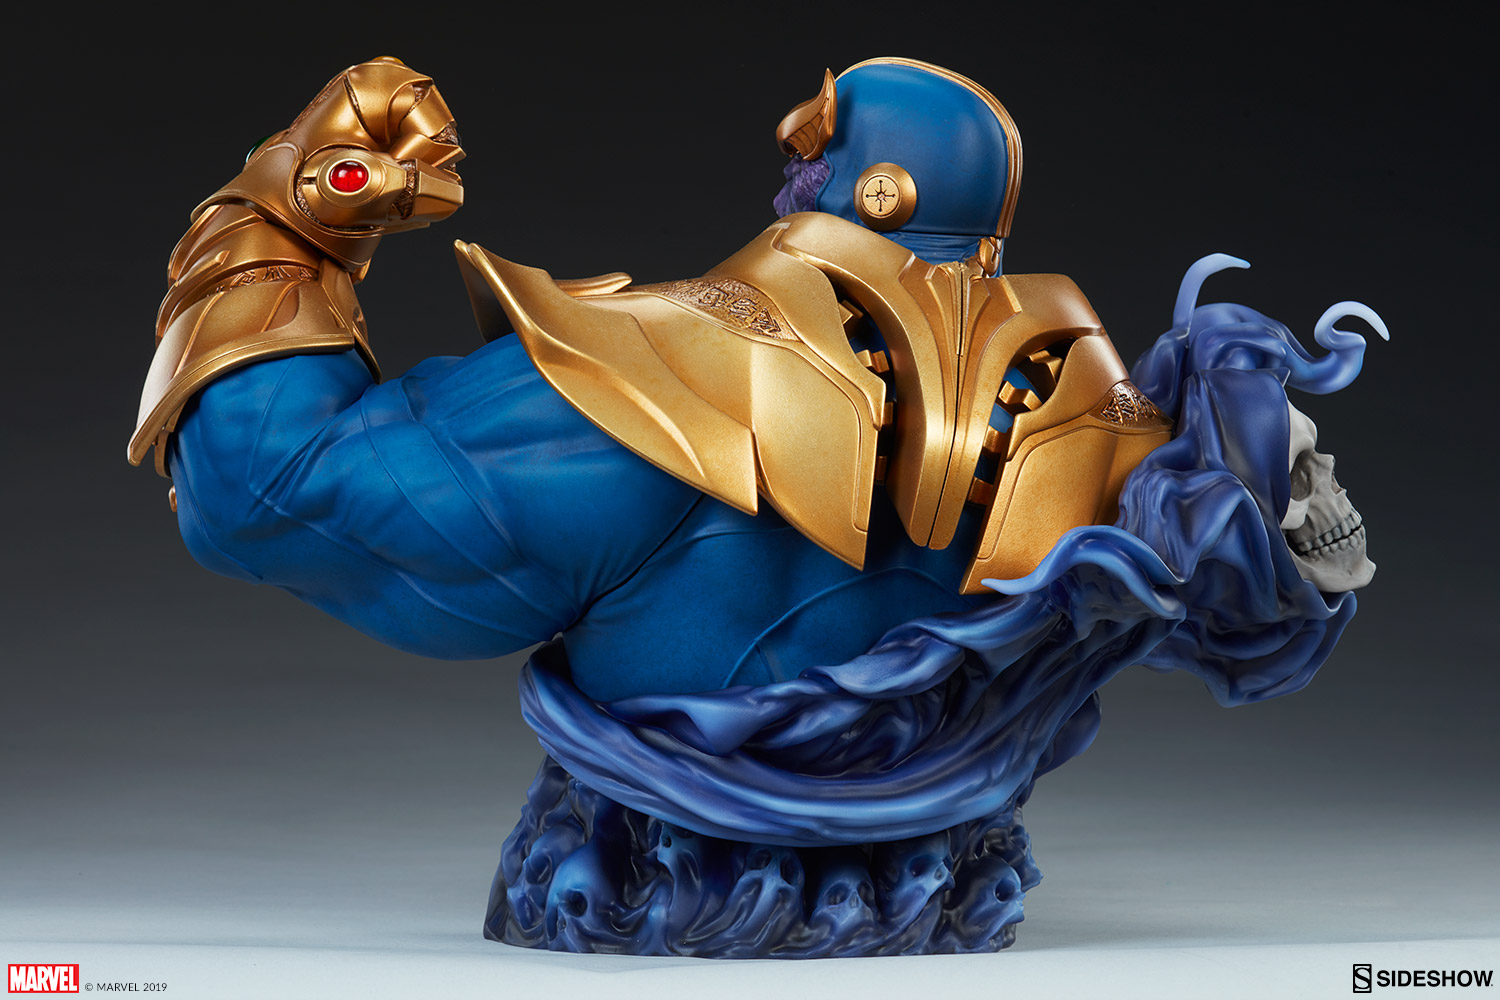 Ever Wonder Where That Iconic Bust Of >> Marvel Thanos Bust By Sideshow Collectibles Sideshow Collectibles